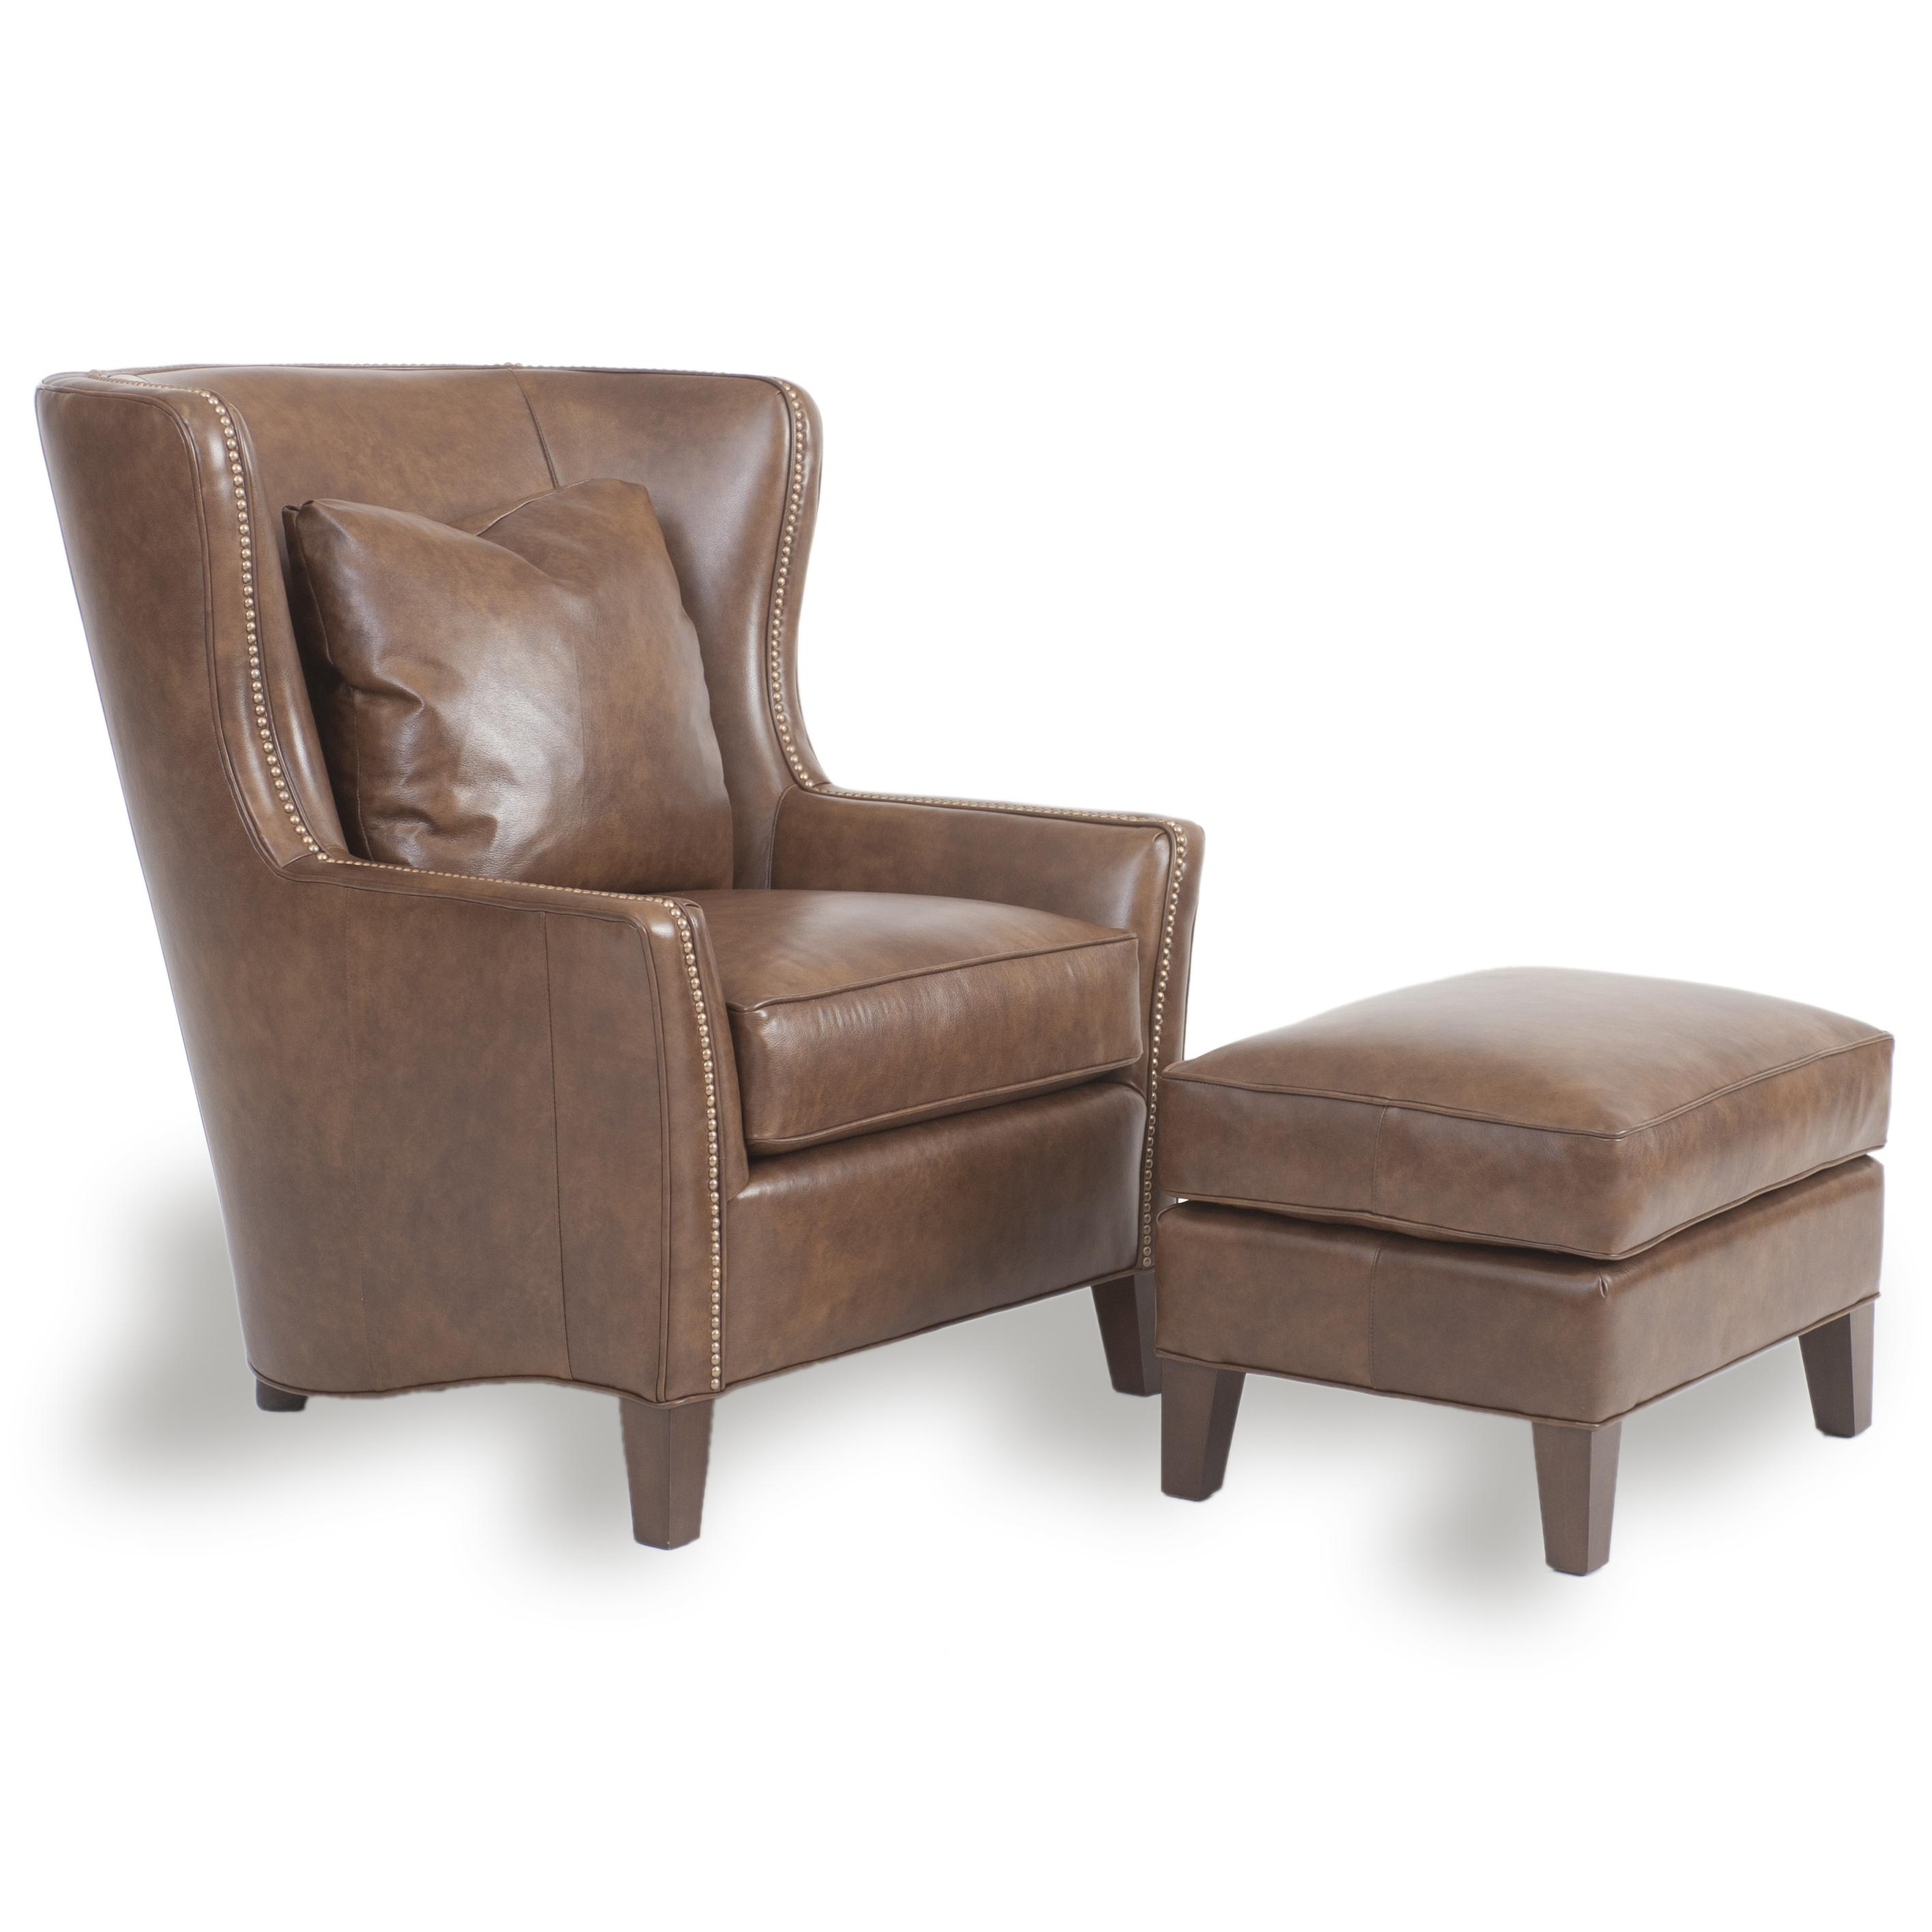 Wingback Chair and Ottoman by Smith Brothers